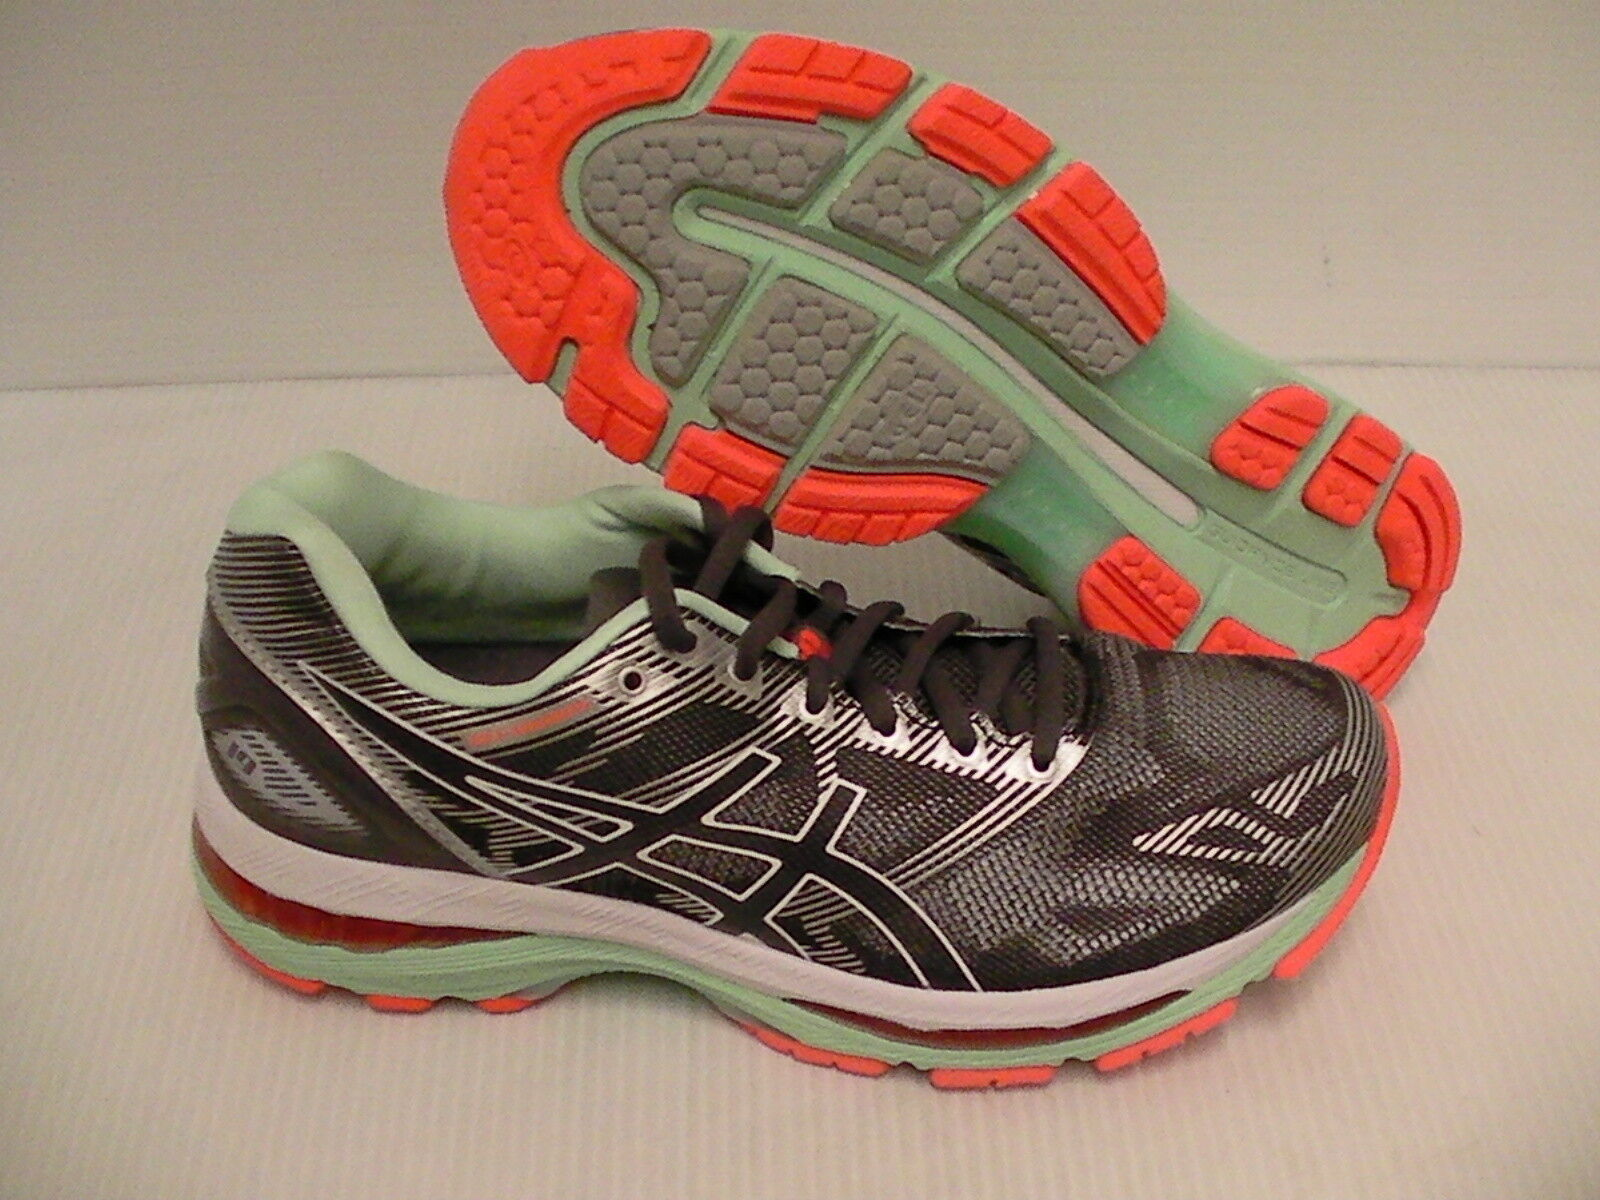 Asics women's gel nimbus 19 running shoes carbon white flash coral size 8 us Wild casual shoes